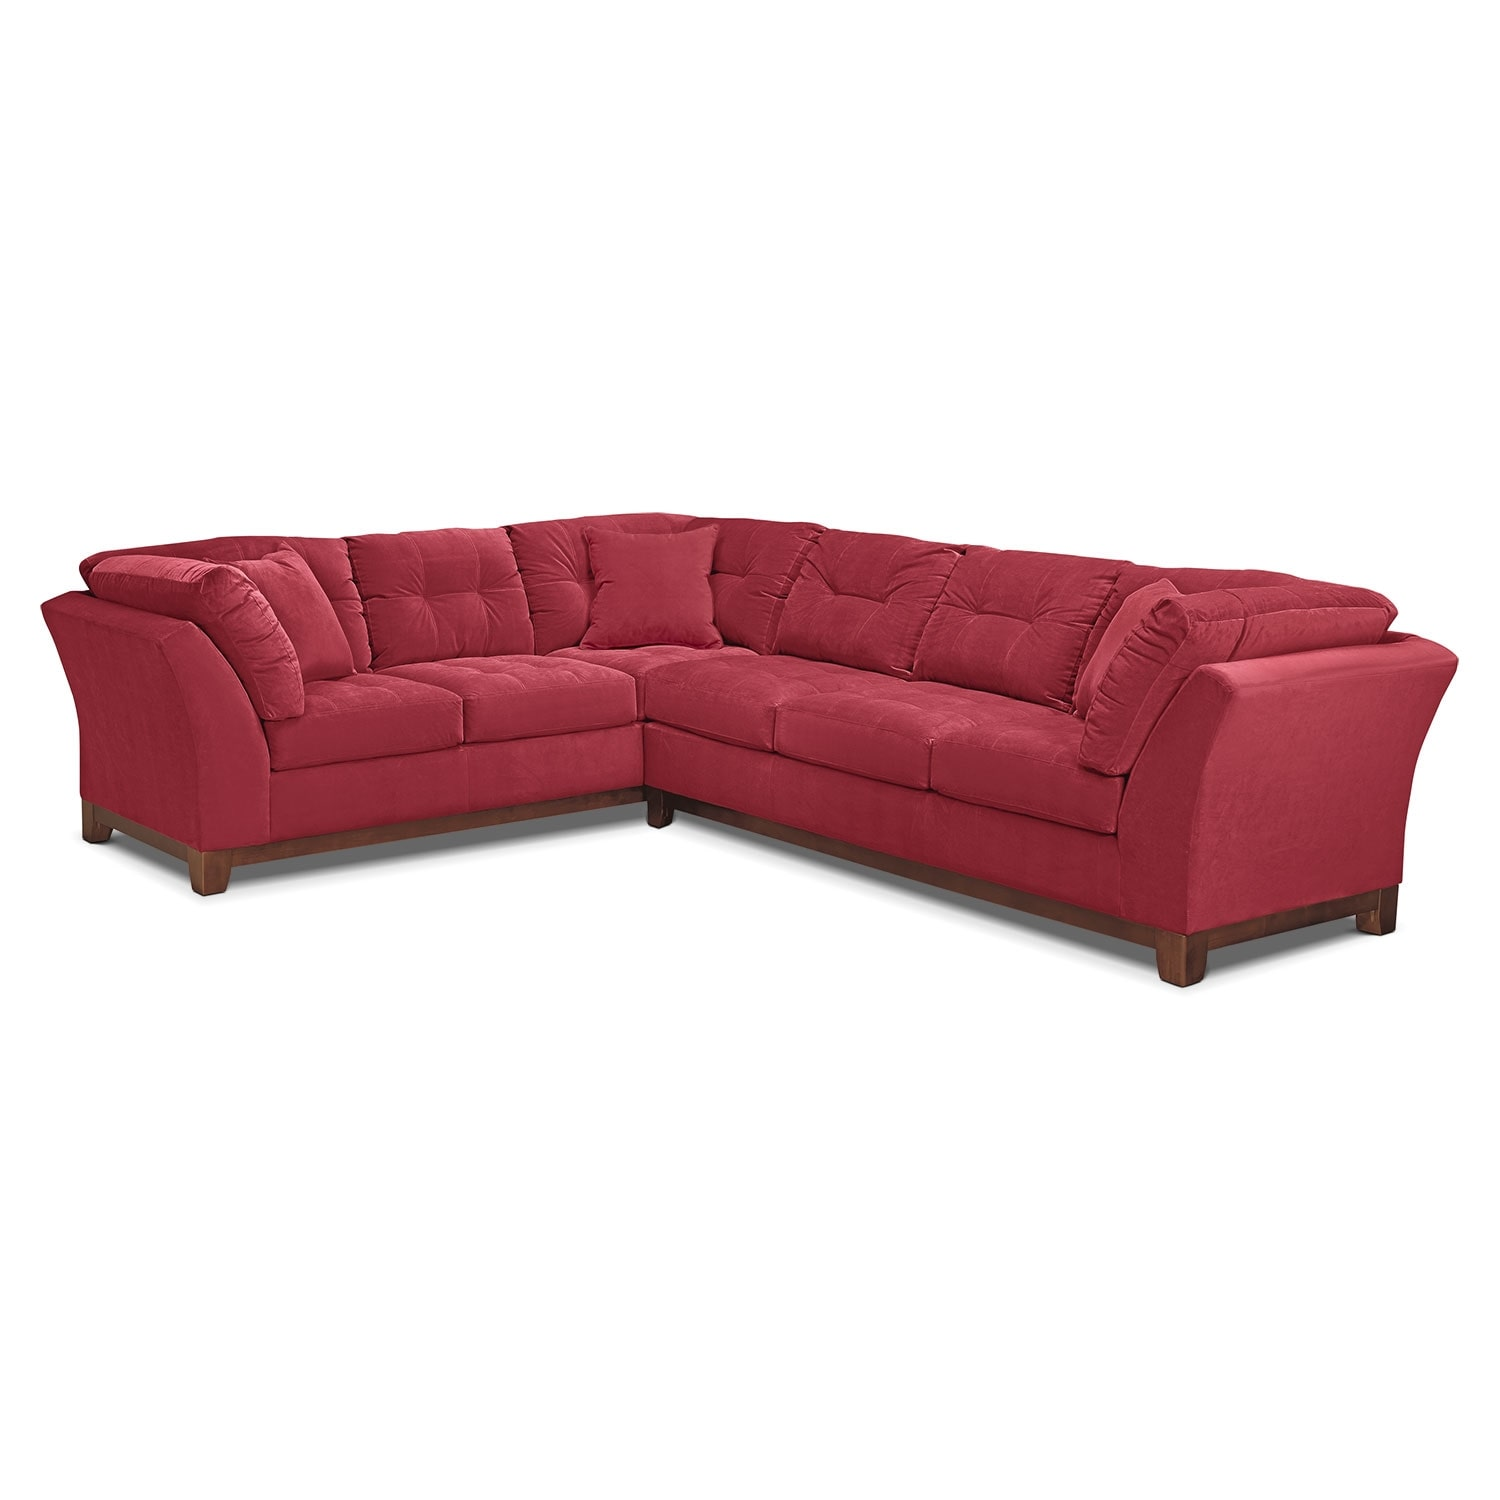 The Sofa Bed Collection The Berlin Sofa Bed Sleeper Collection The Sofa Bed Collection Sofa